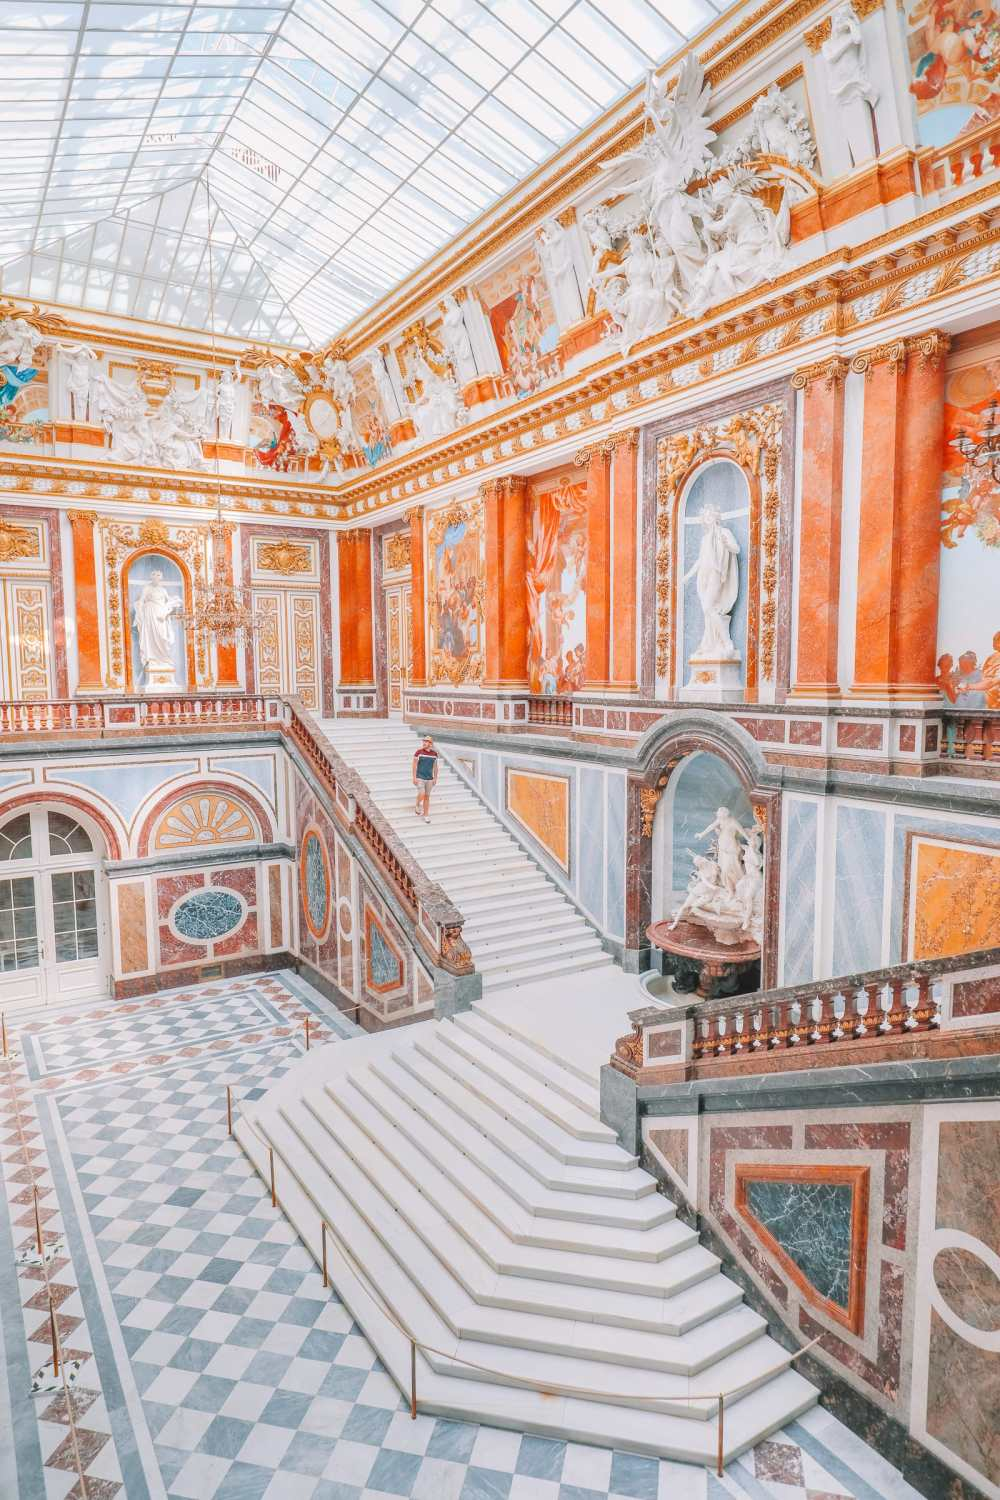 Herrenchiemsee Palace - One Of The Most Beautiful And Grandest Palaces In Germany You Have To Visit! (21)